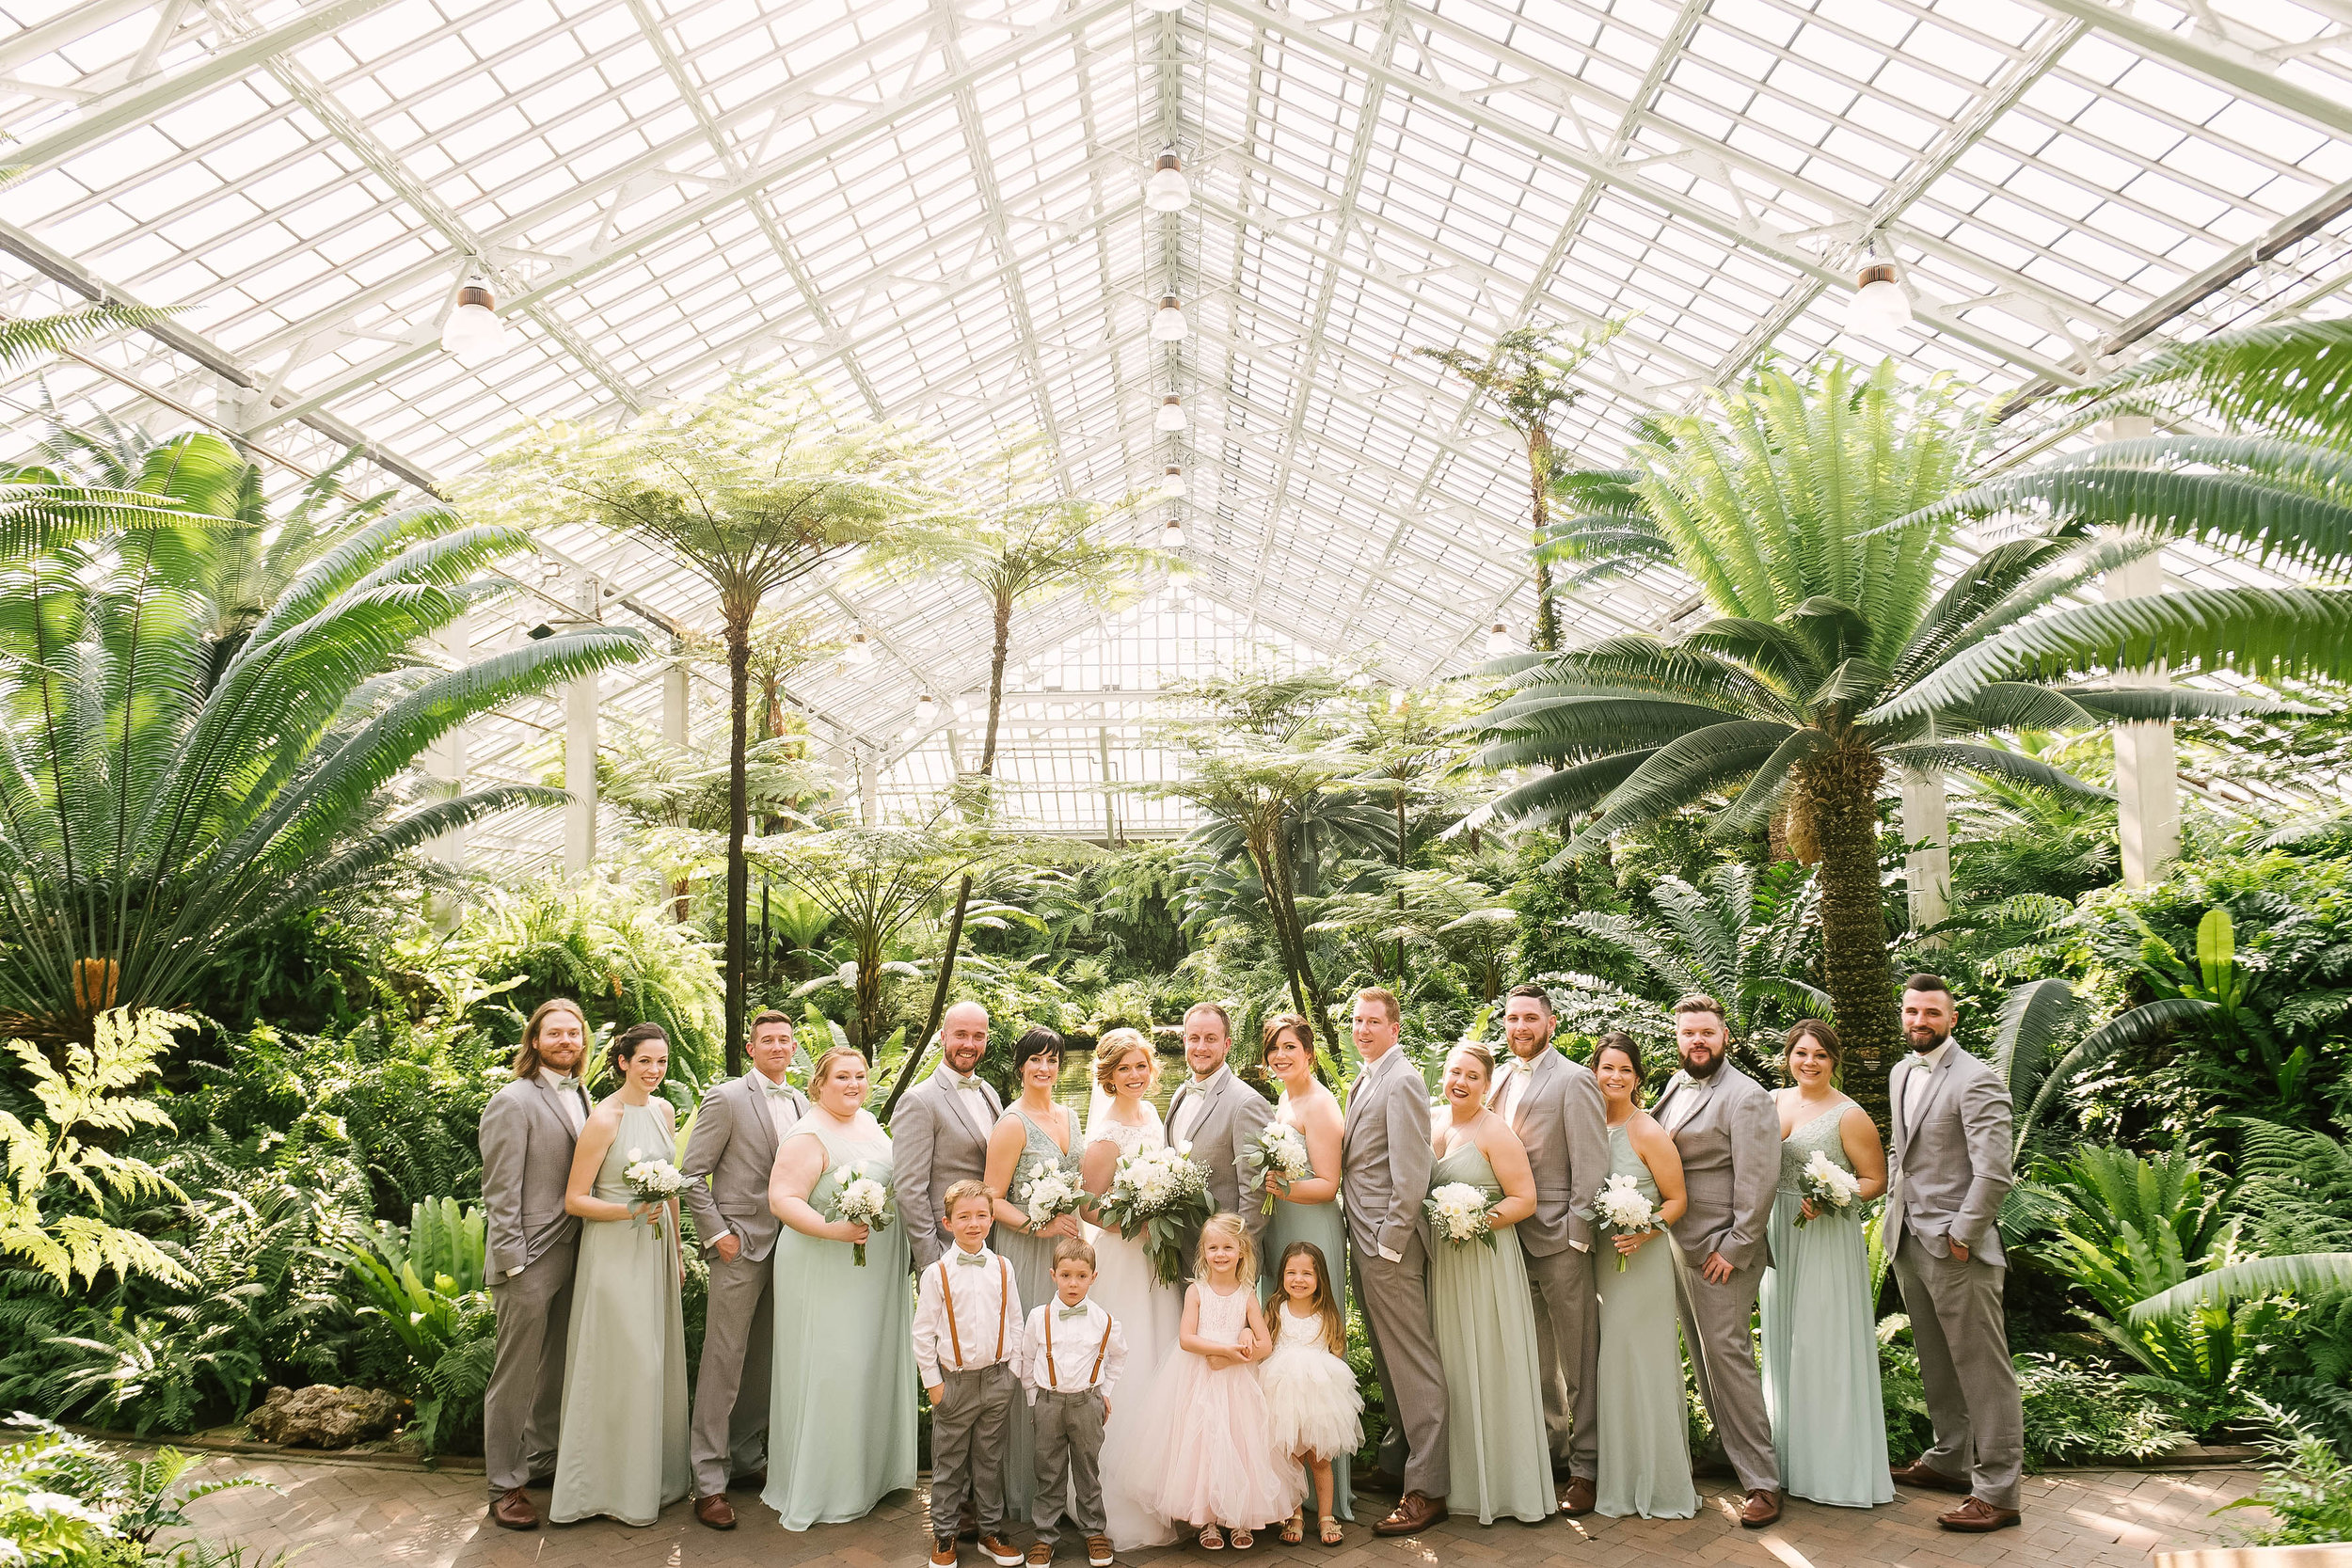 Garfield Park Conservatory Wedding.Amanda Joe S Romantic Greenhouse Wedding At Garfield Park